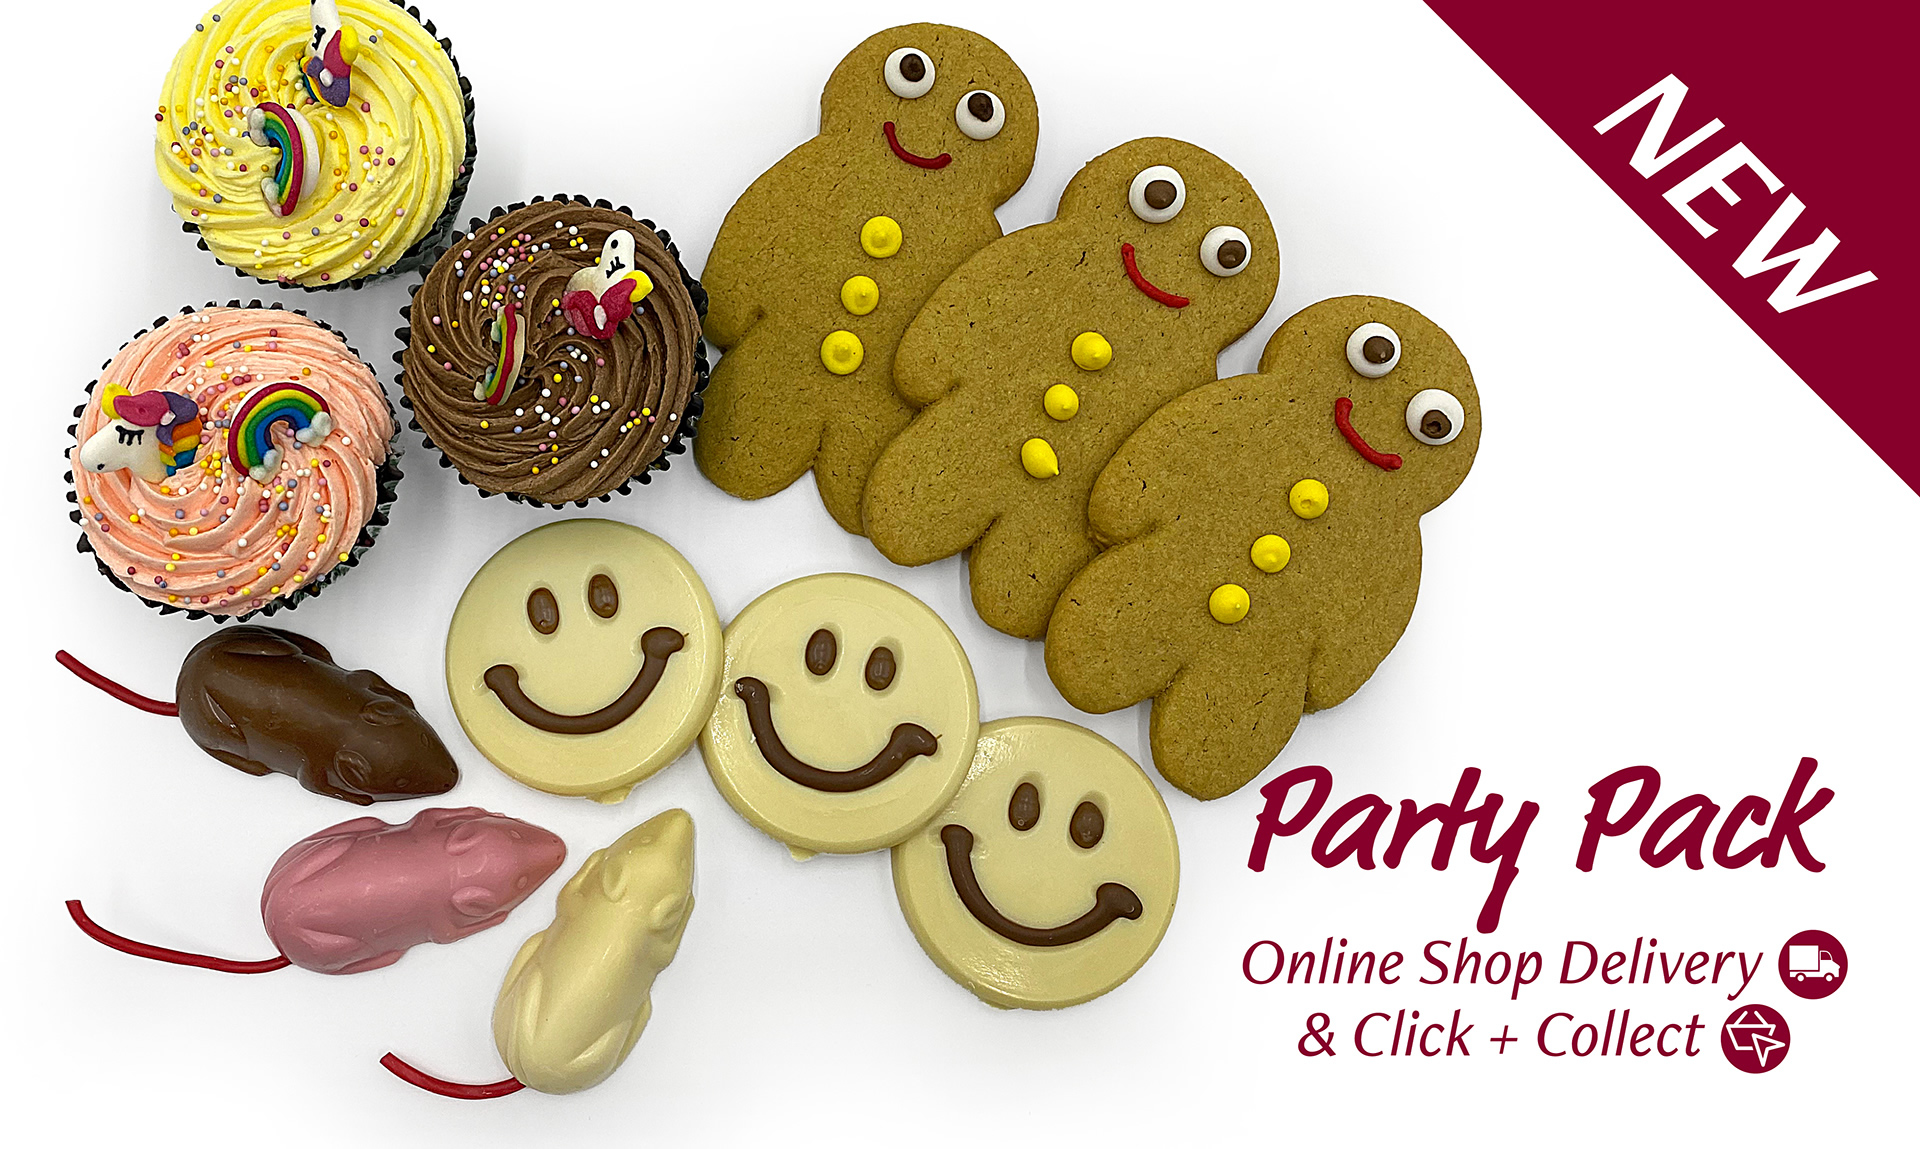 Party Pack - Online Shop Delivery, Click + Collect